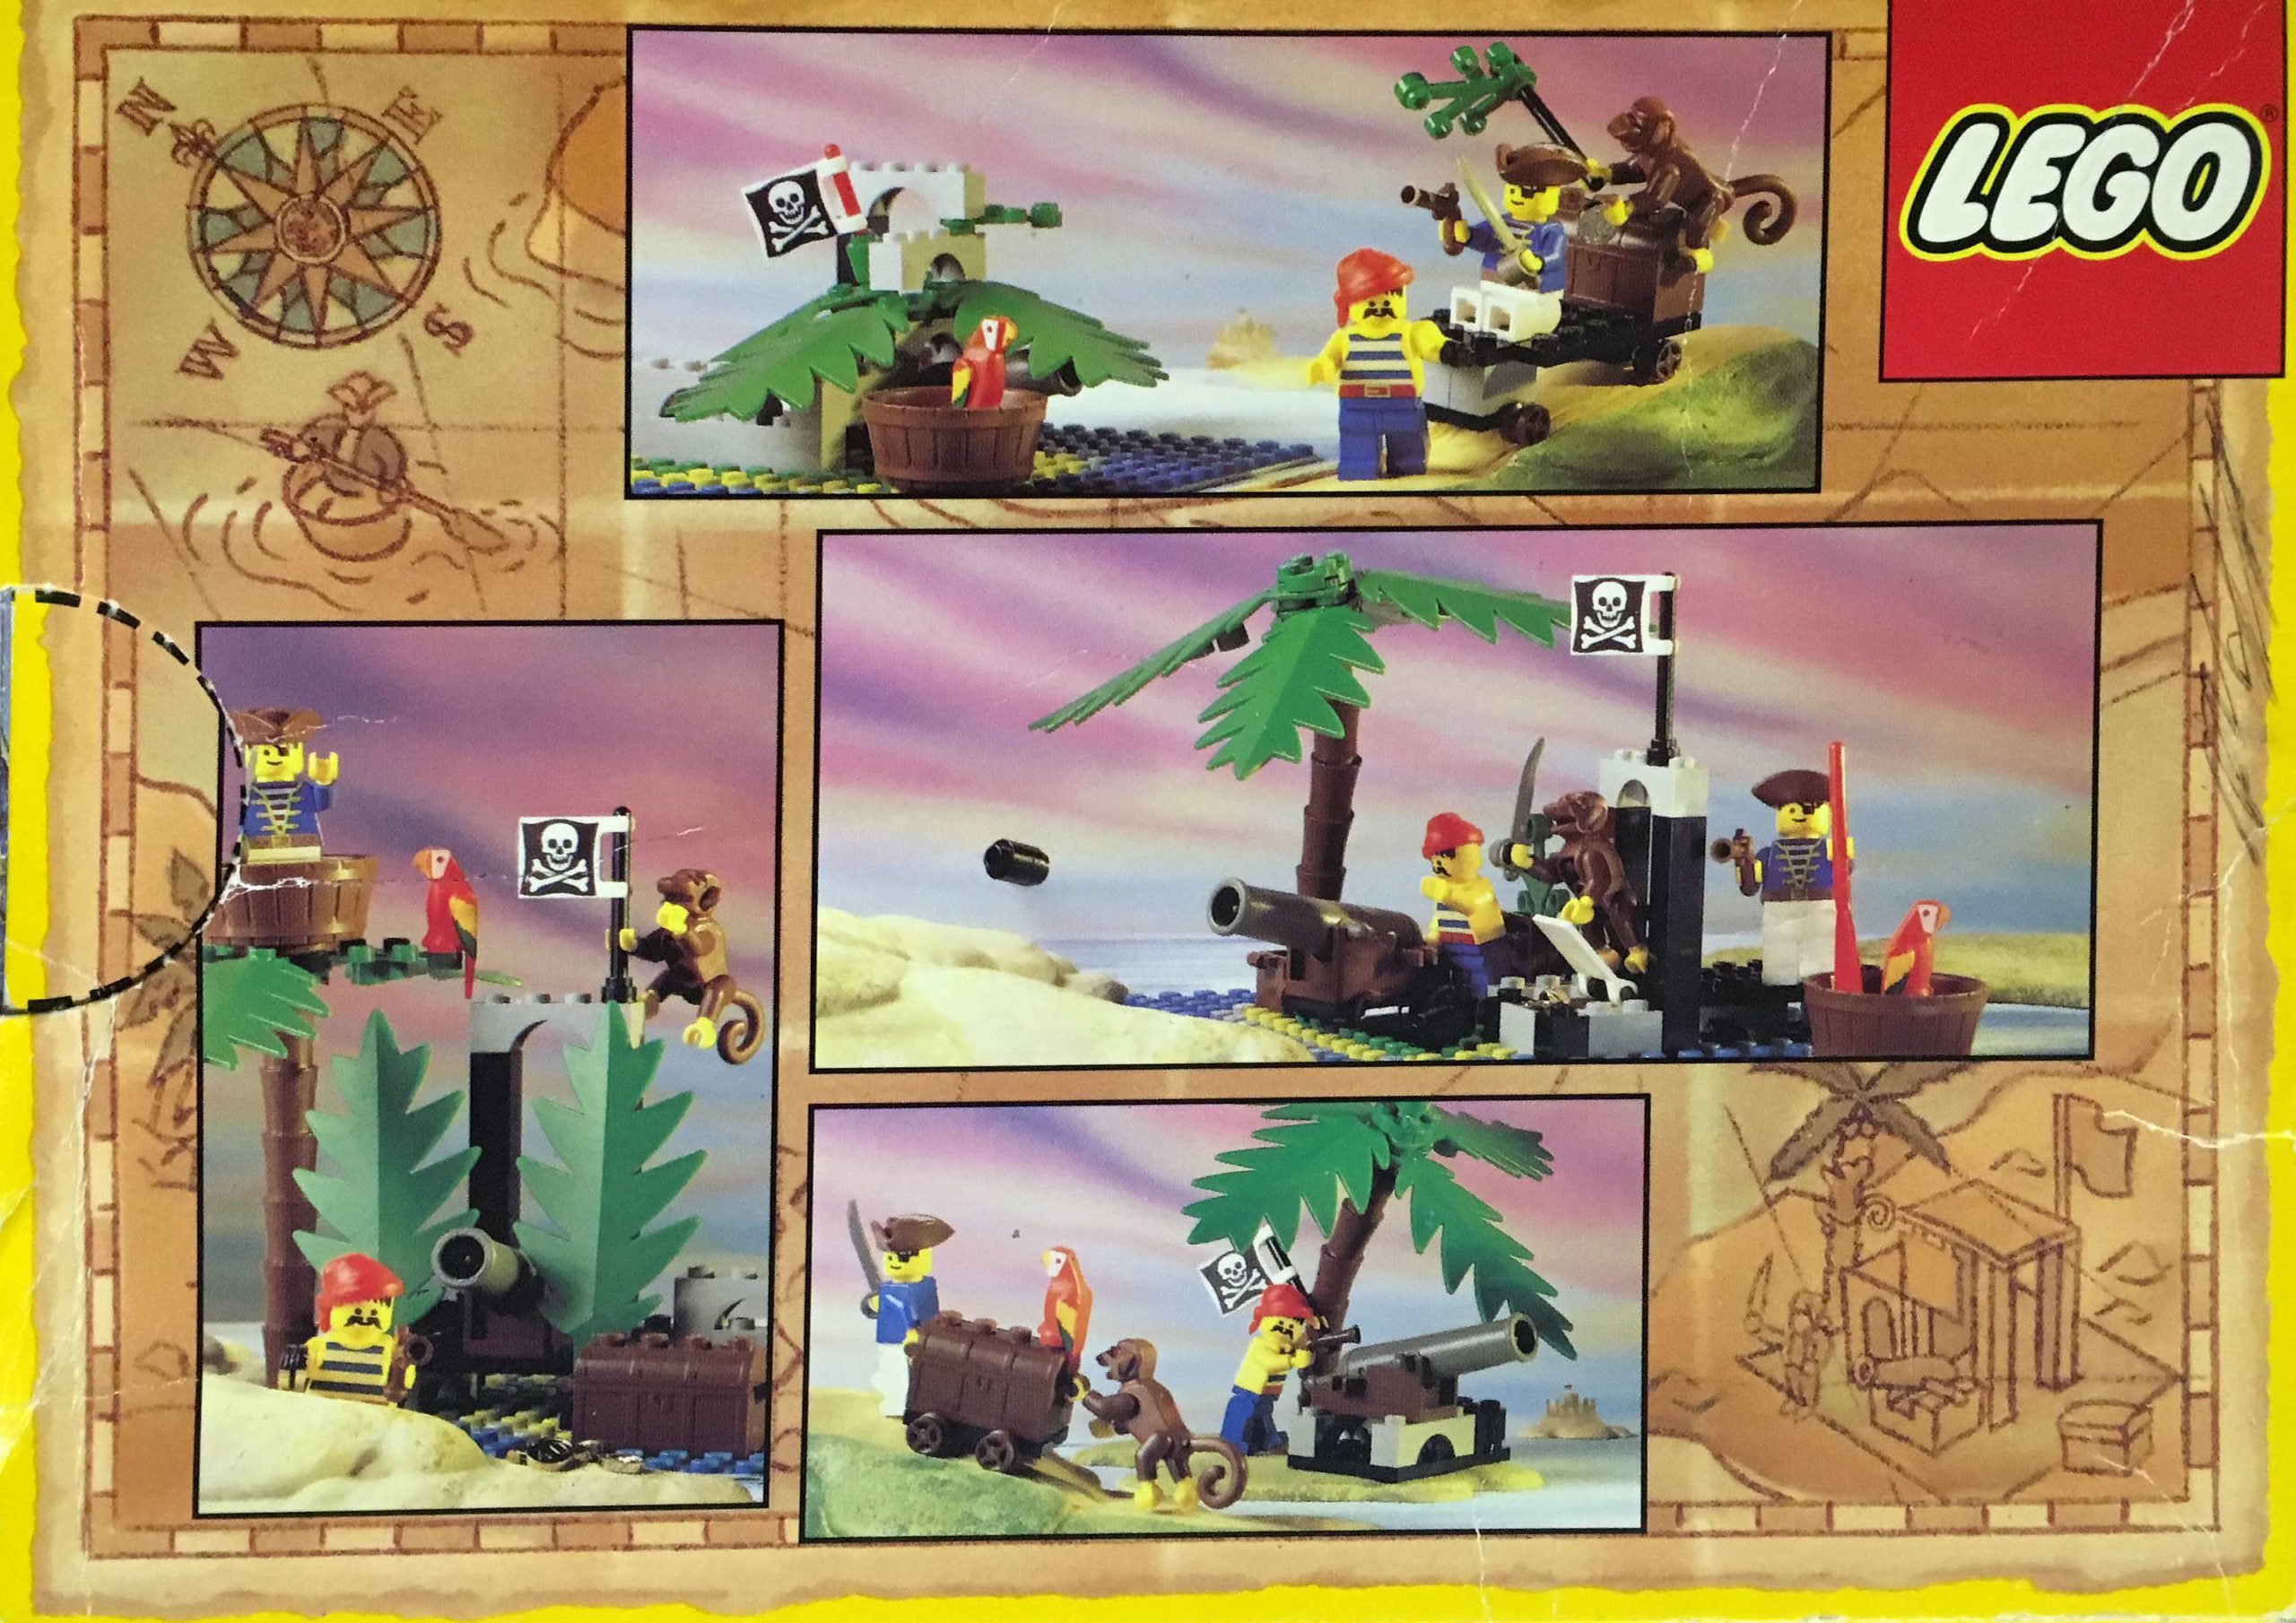 6260 Shipwreck Island Back Of The Box Builds